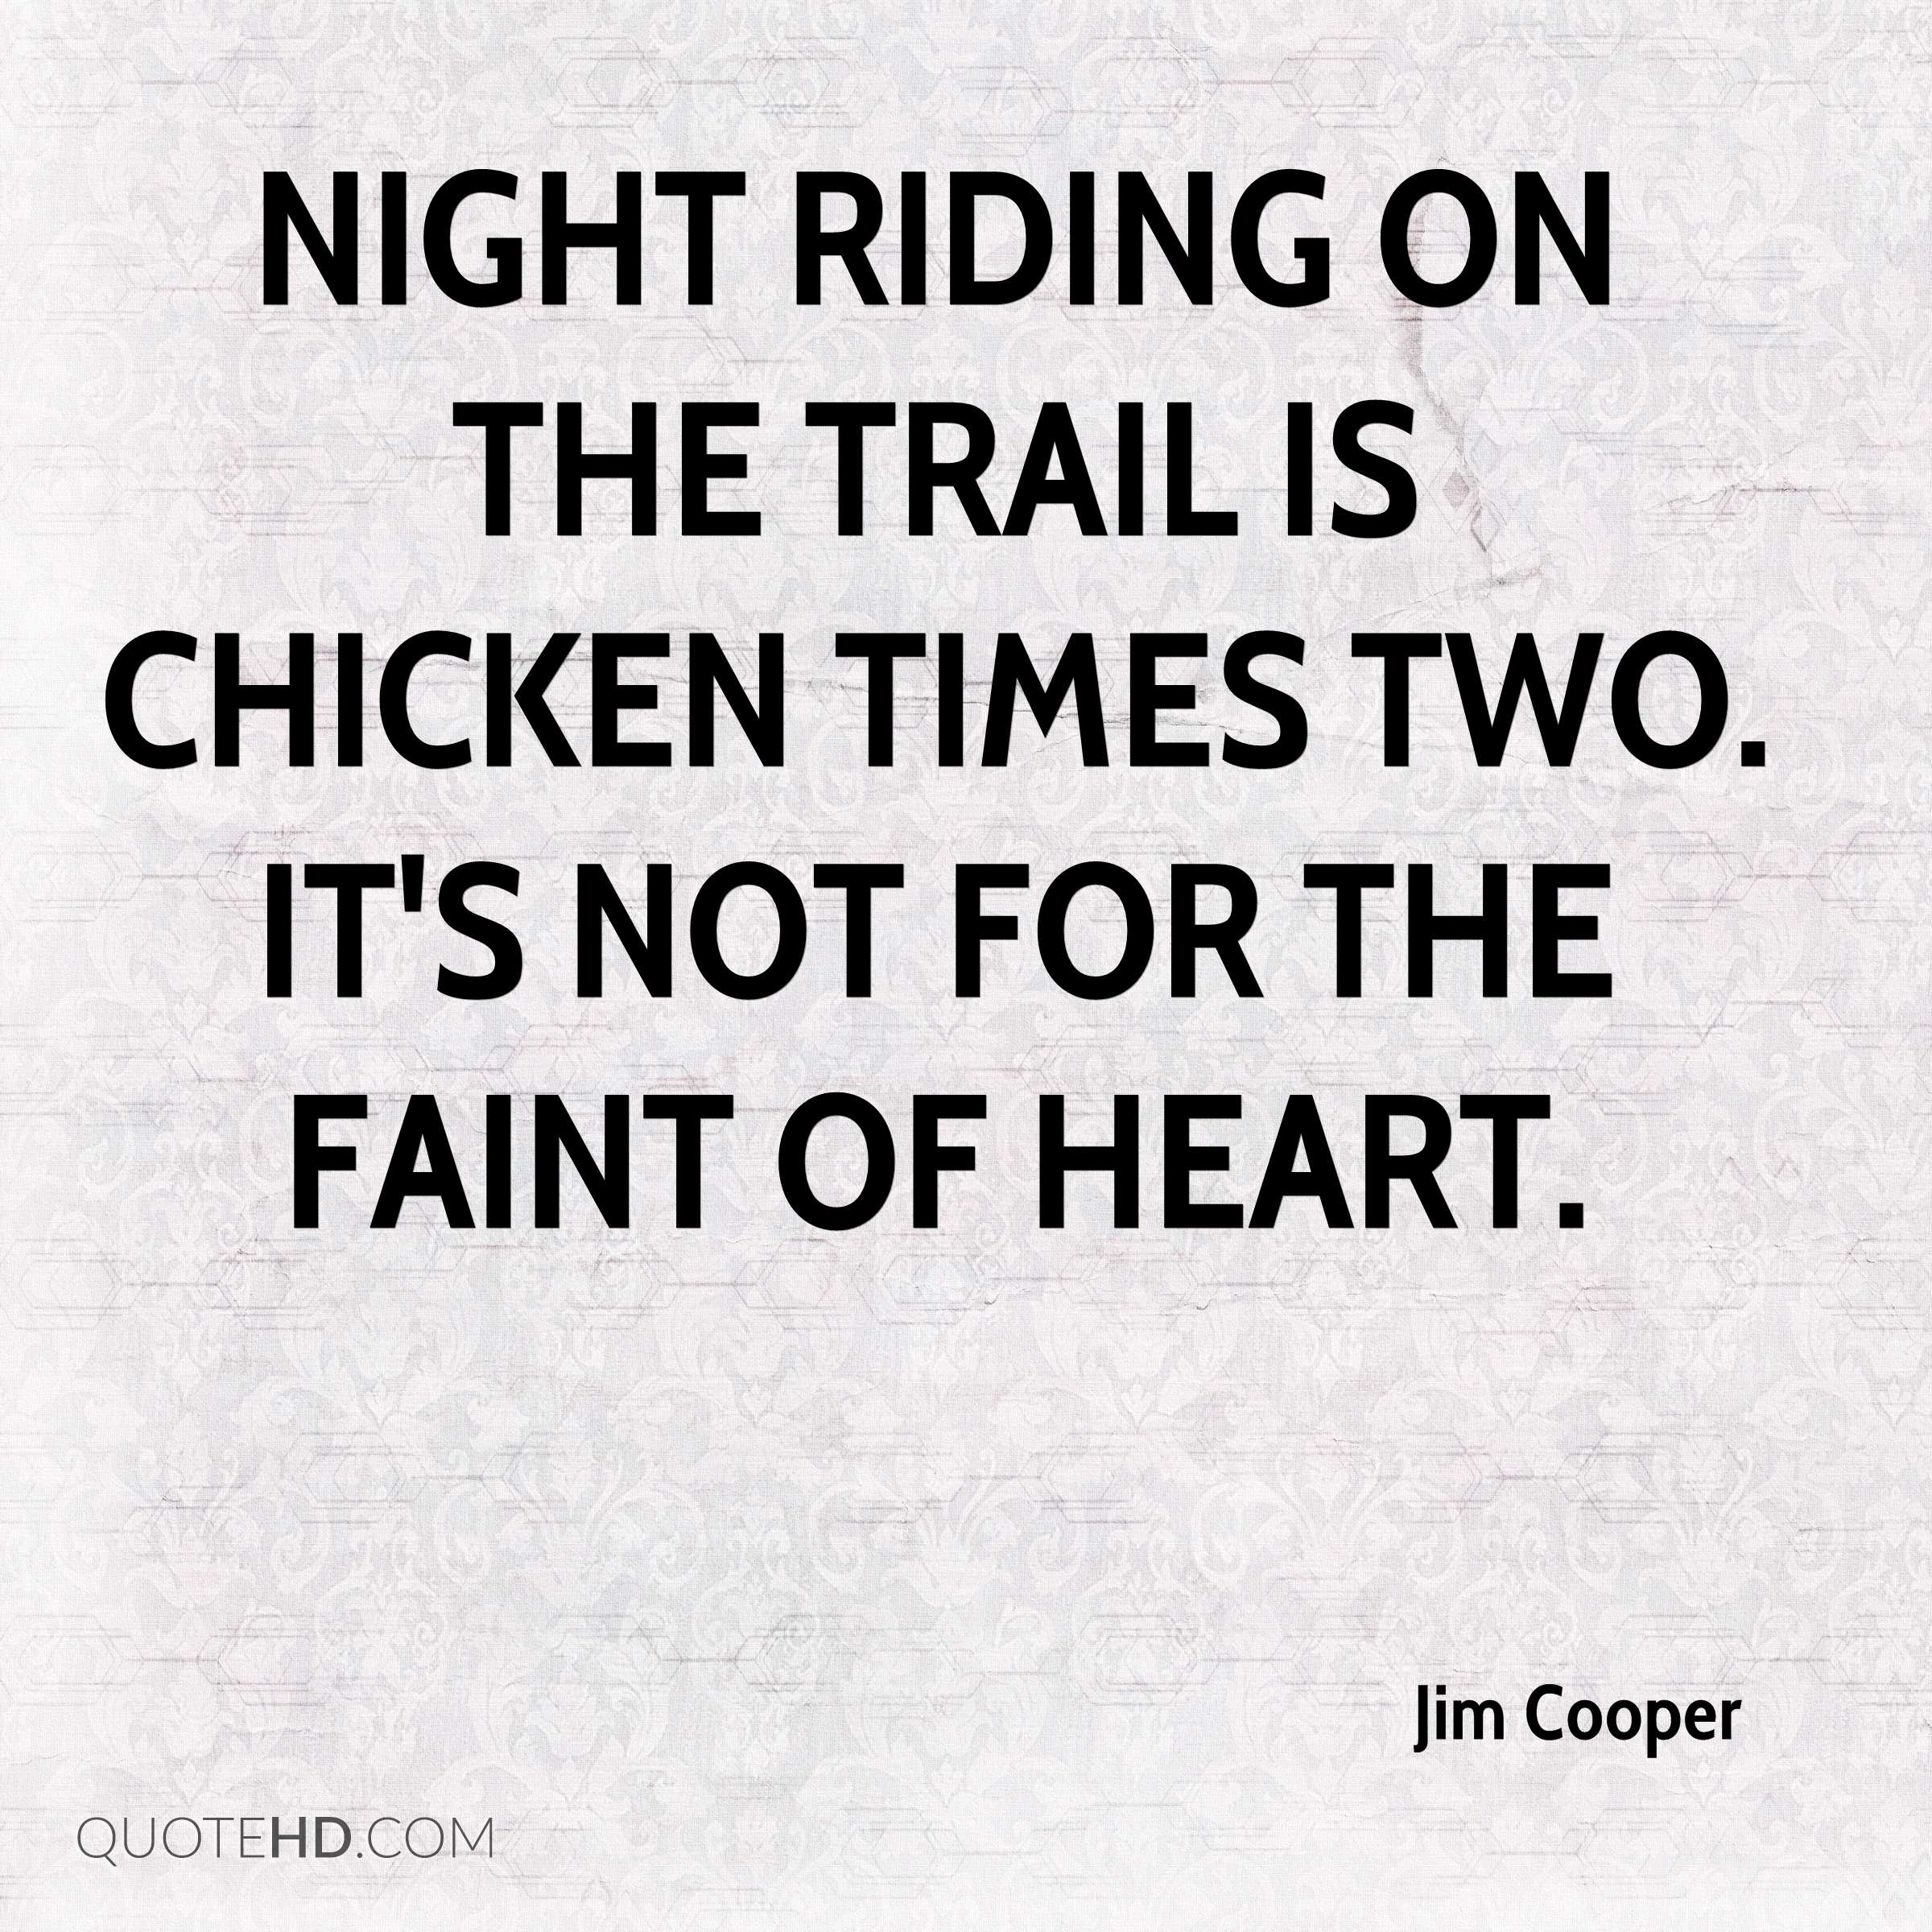 Night riding on the trail is chicken times two. It's not for the faint of heart.